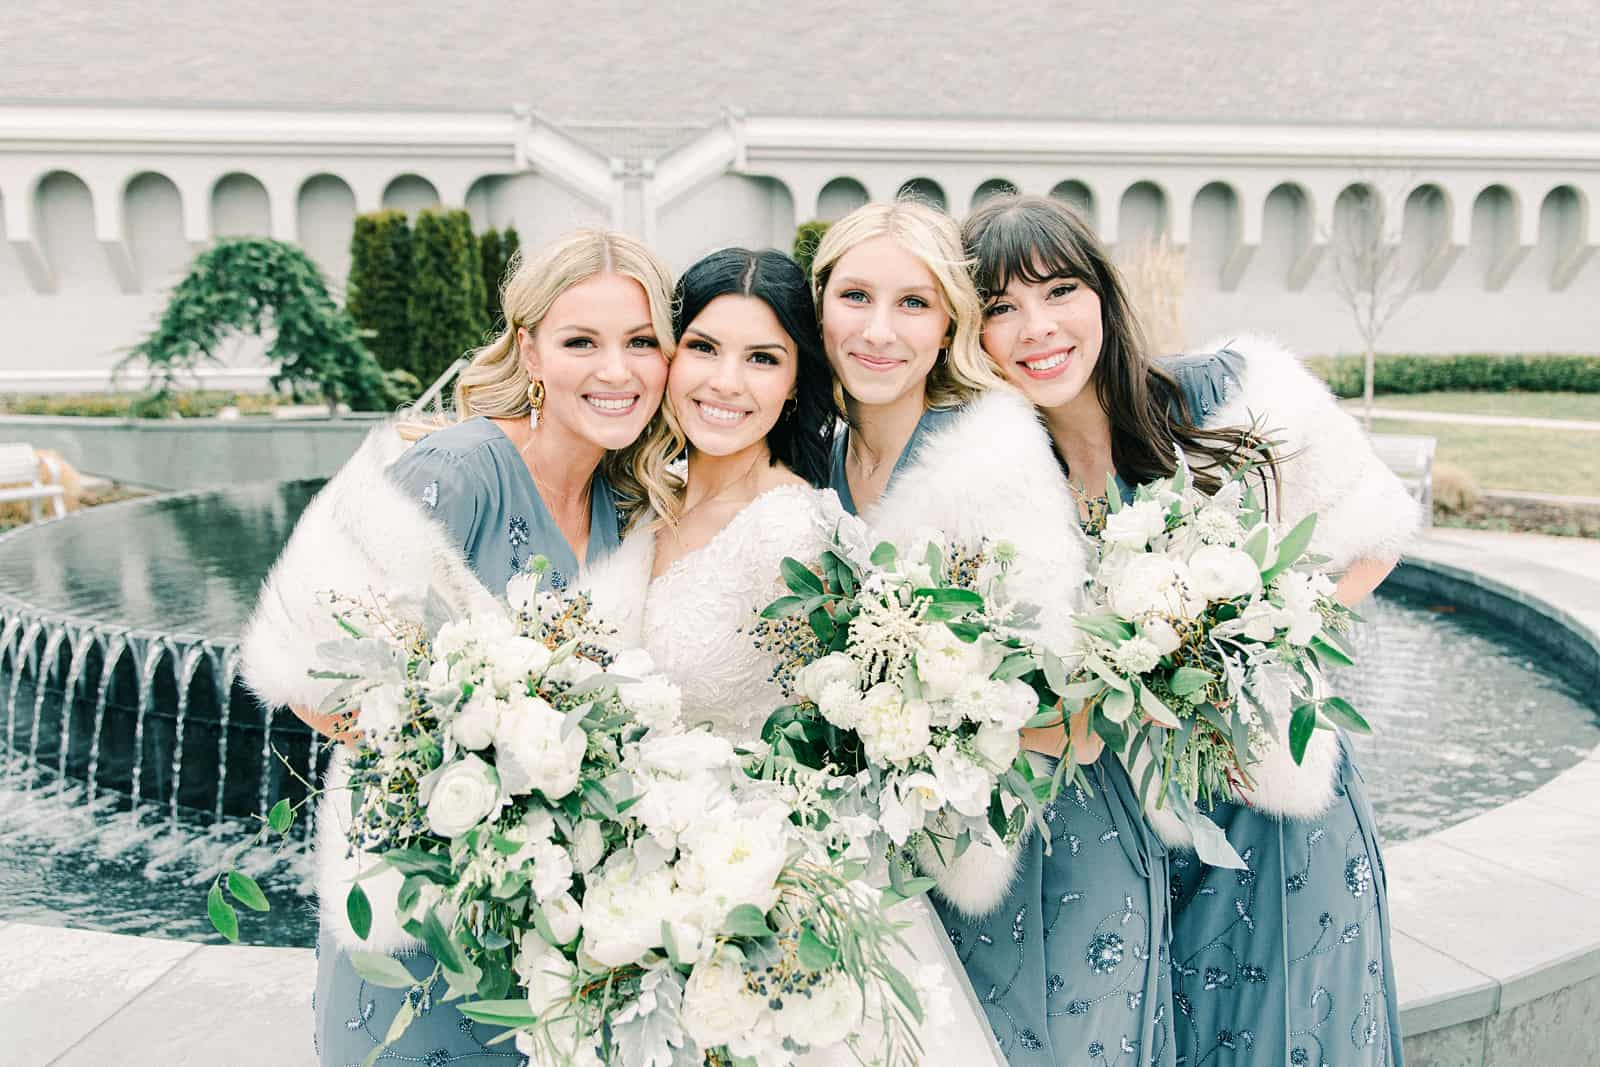 Winter wedding bride with bridesmaids, blue beaded bridesmaids dresses with white fur stoles